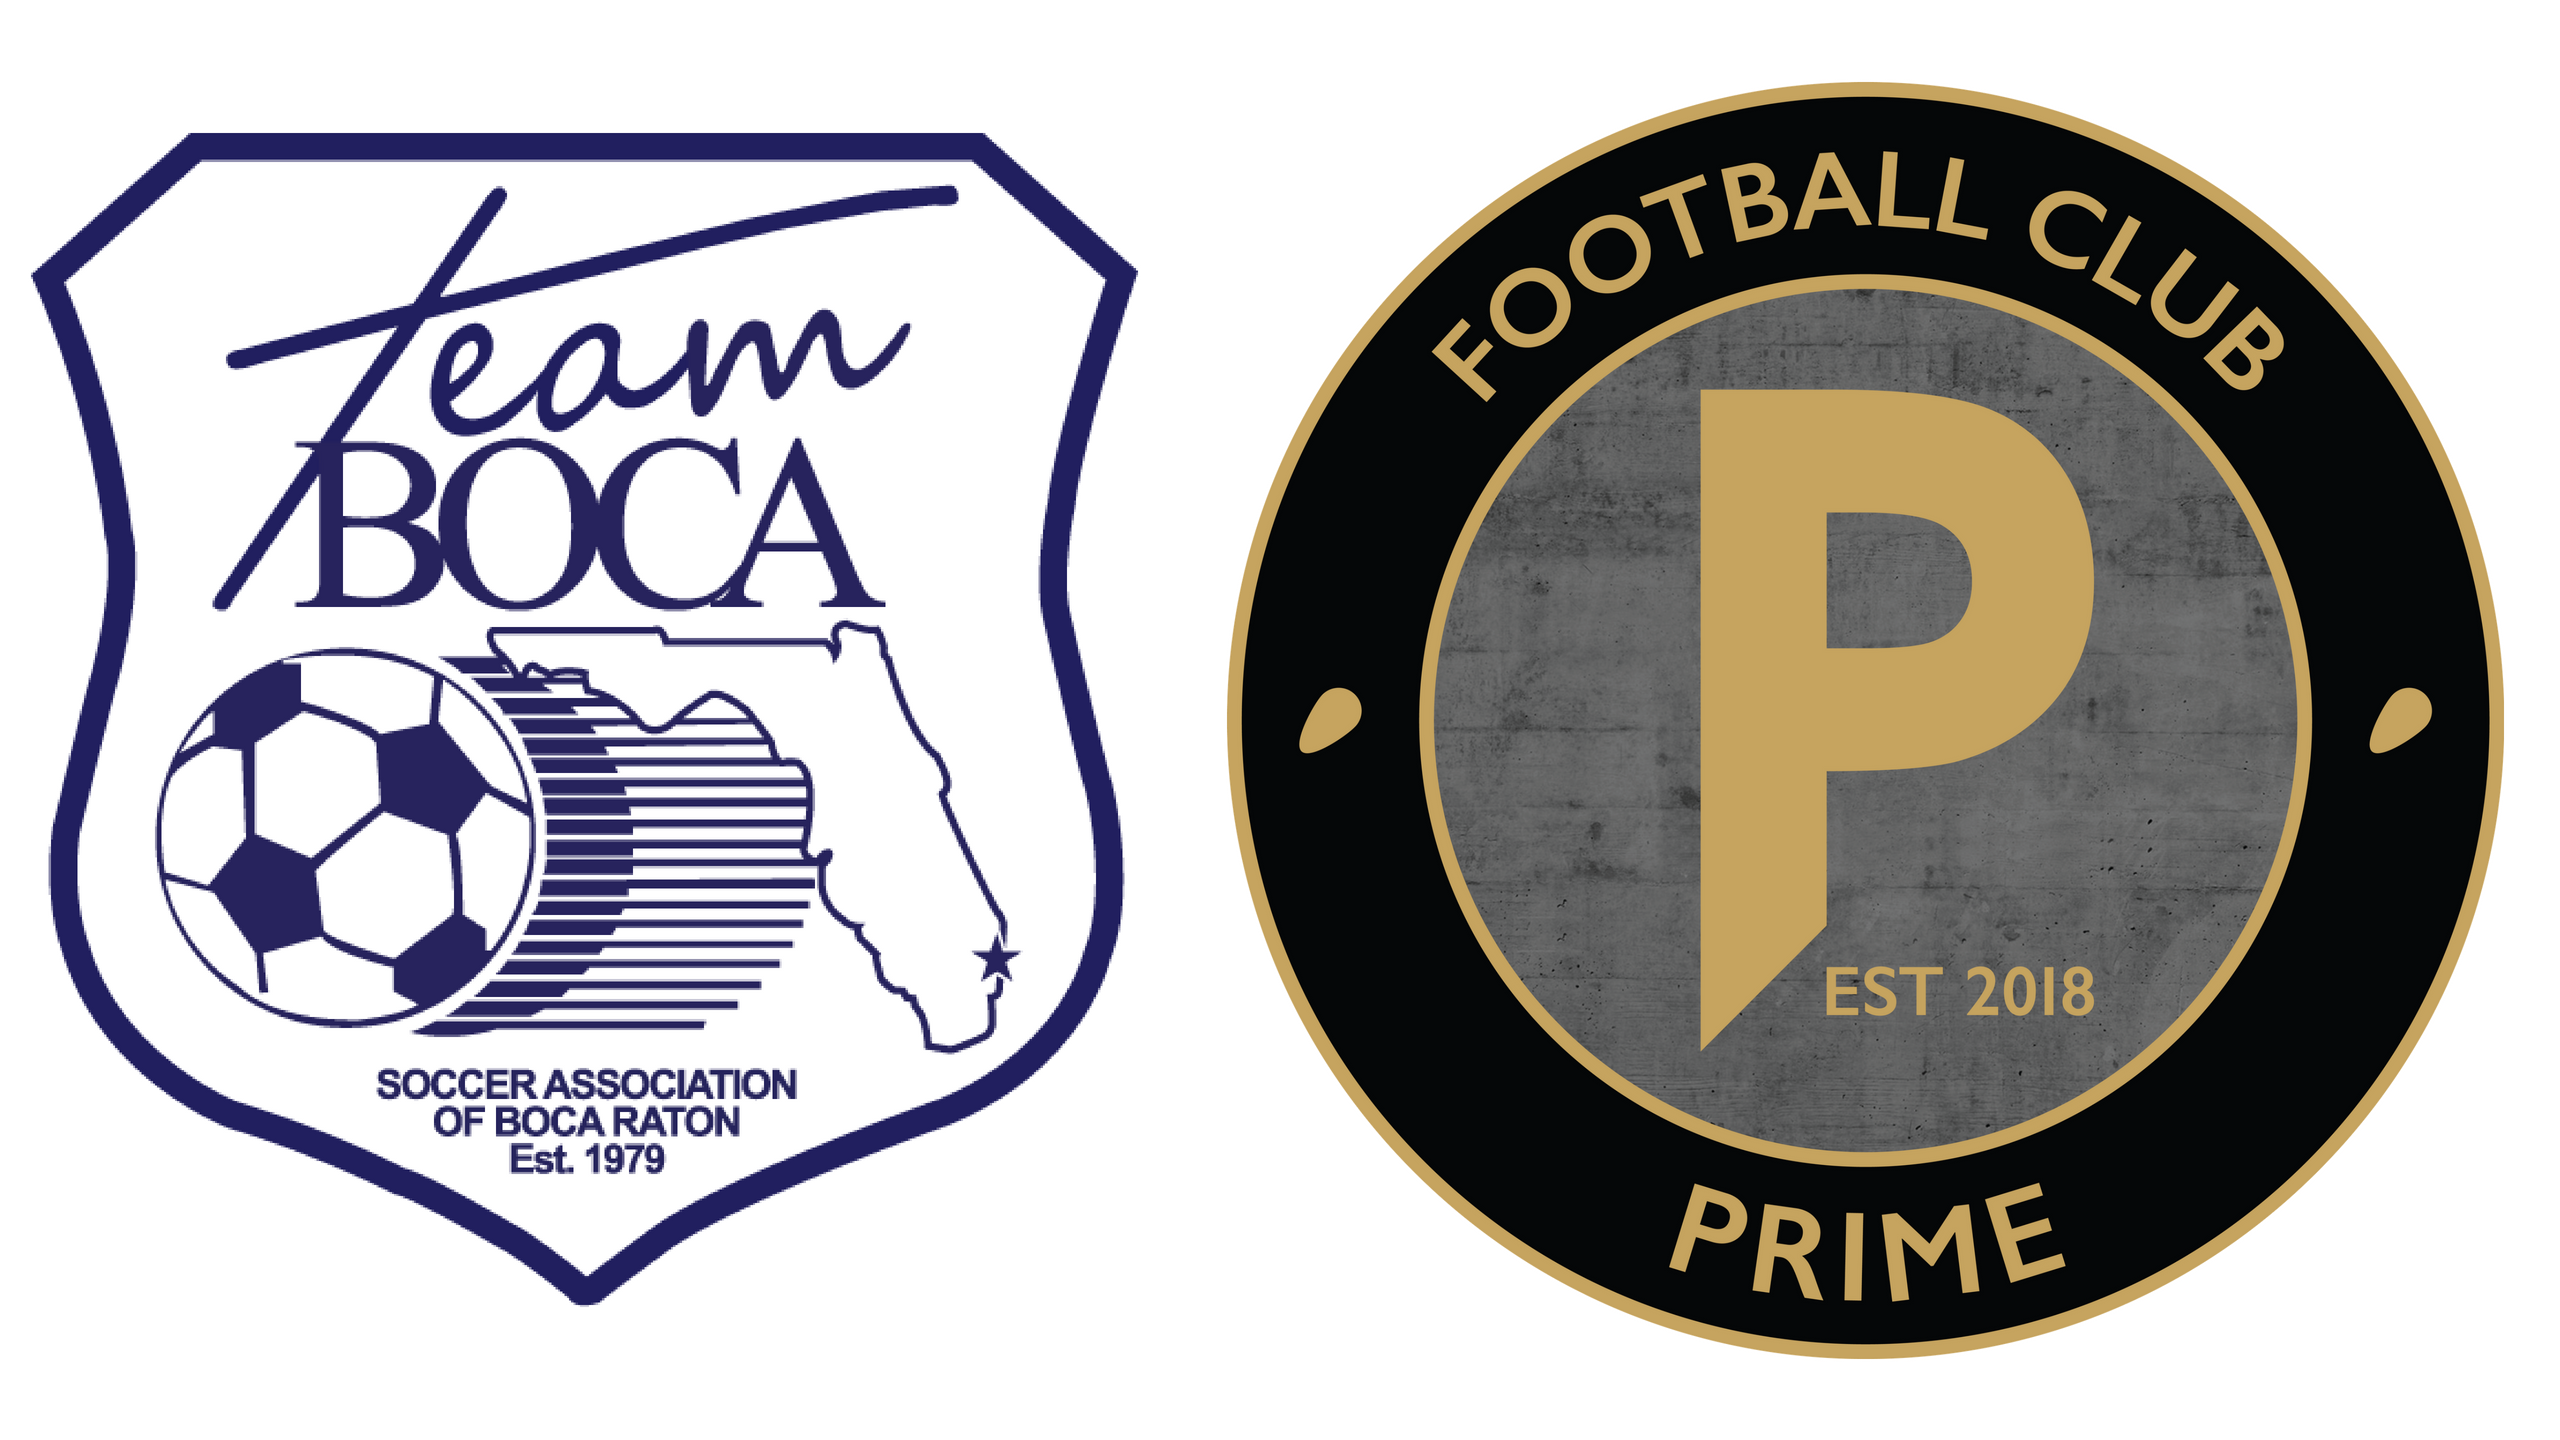 Team Boca and Football Club Prime Form Partnership